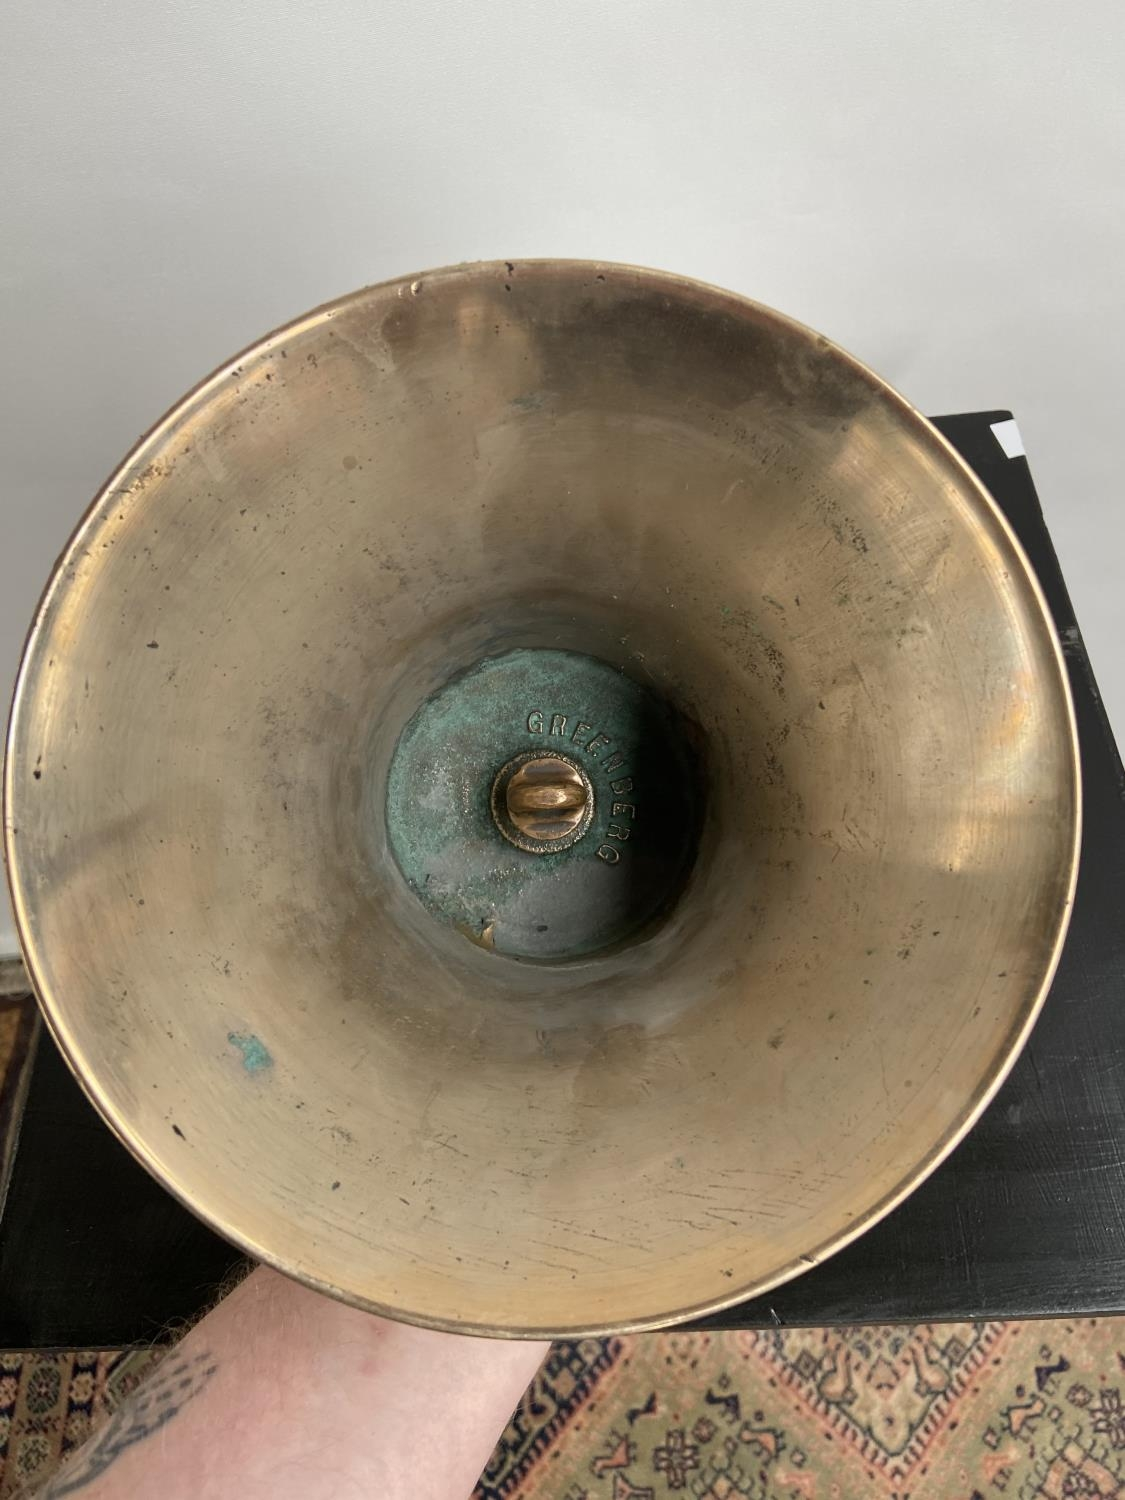 A Heavy antique hand bell. Stamped Greenberg to the inside. [Height 21cm, diameter 19cm] - Image 3 of 3